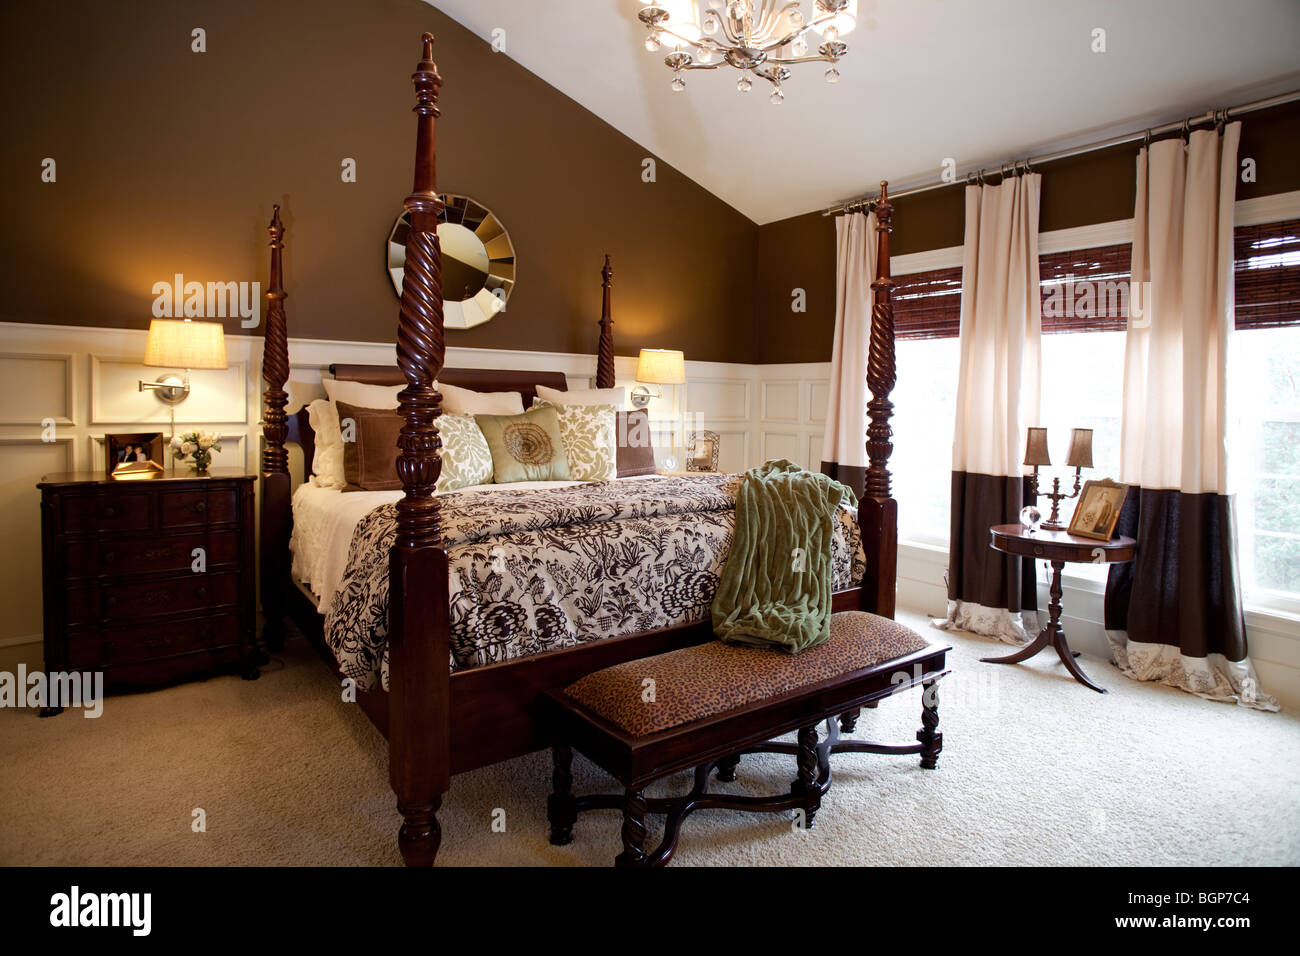 Master Bedroom With King Size Four Poster Bed Covered With